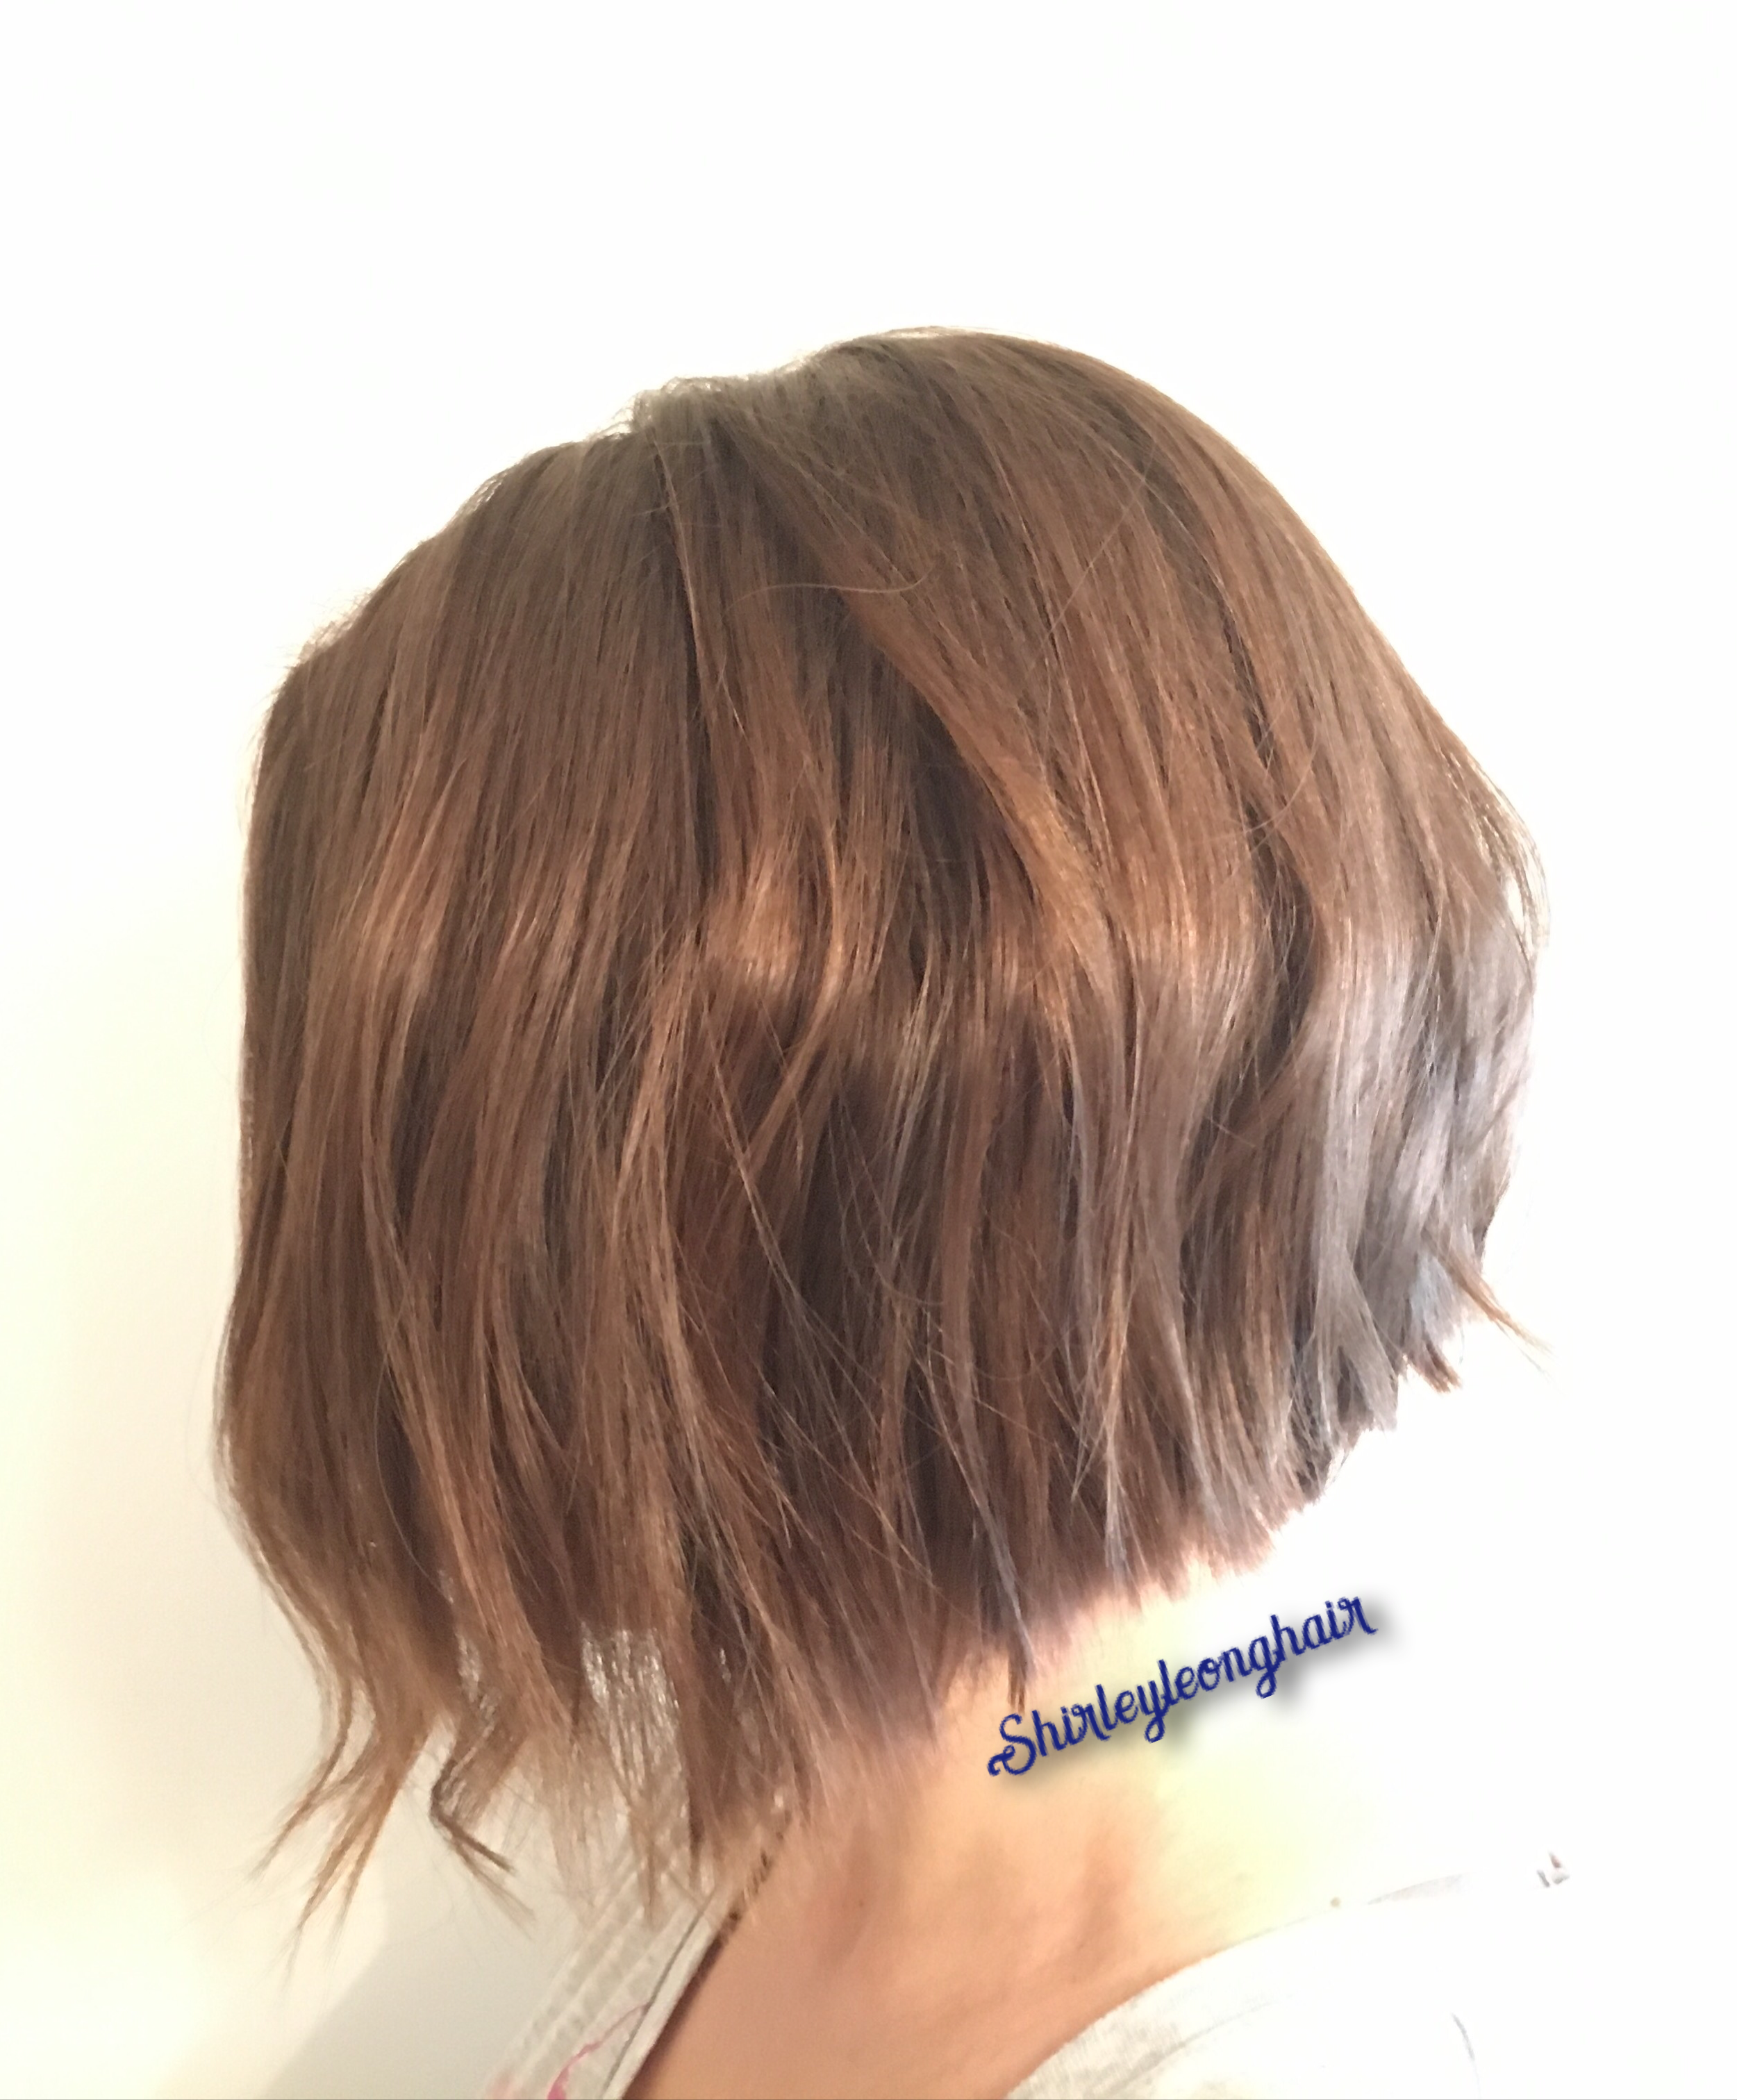 disconnected a-line bob | assymetrical haircuts in 2019